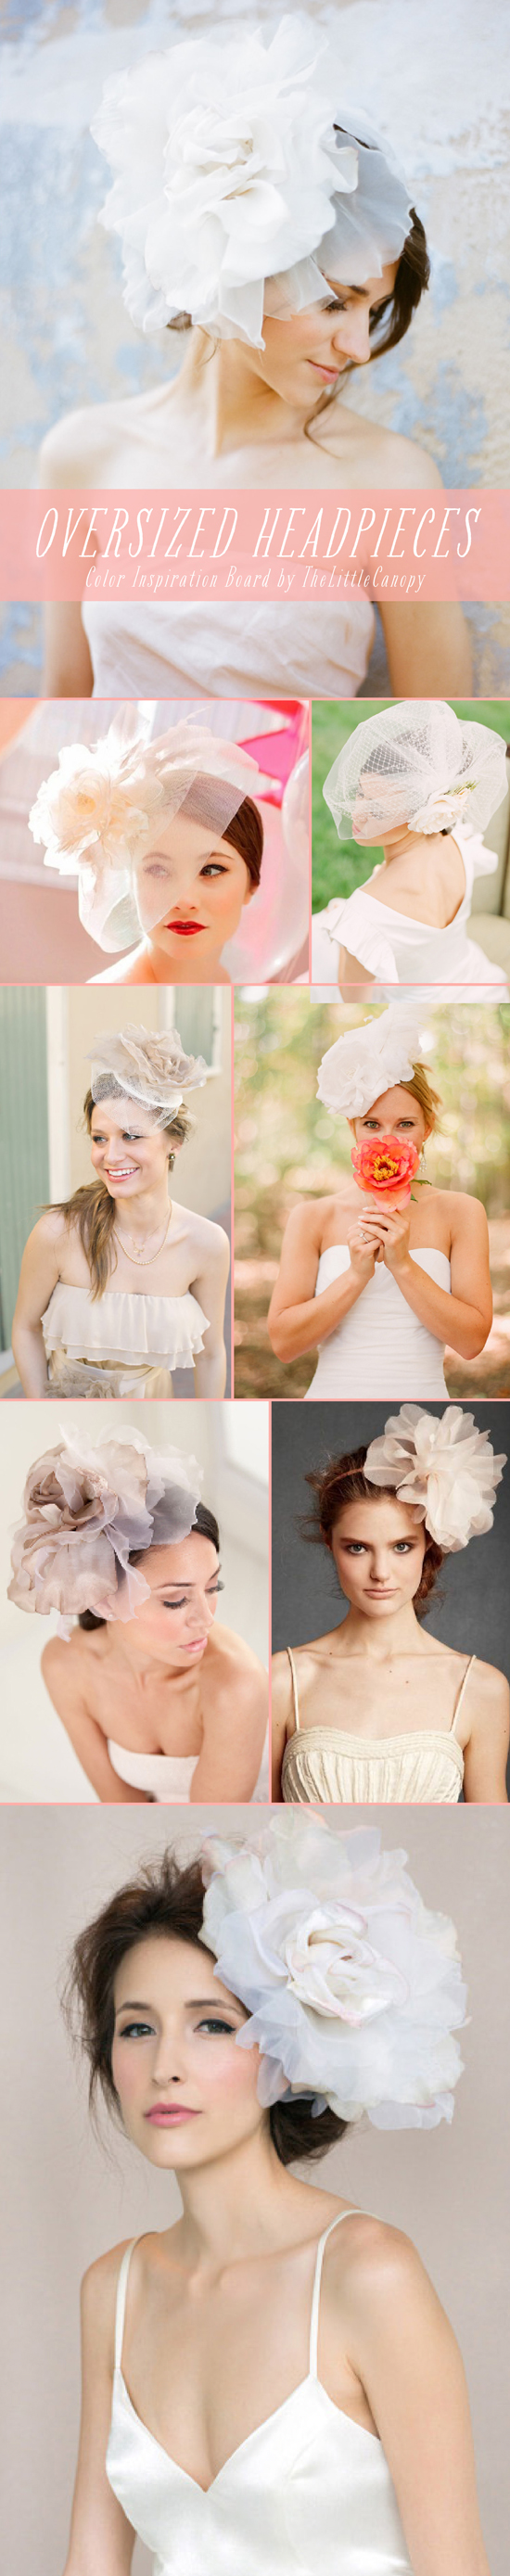 wedding-inspiration-board-oversized-bridal-headpieces-ideas